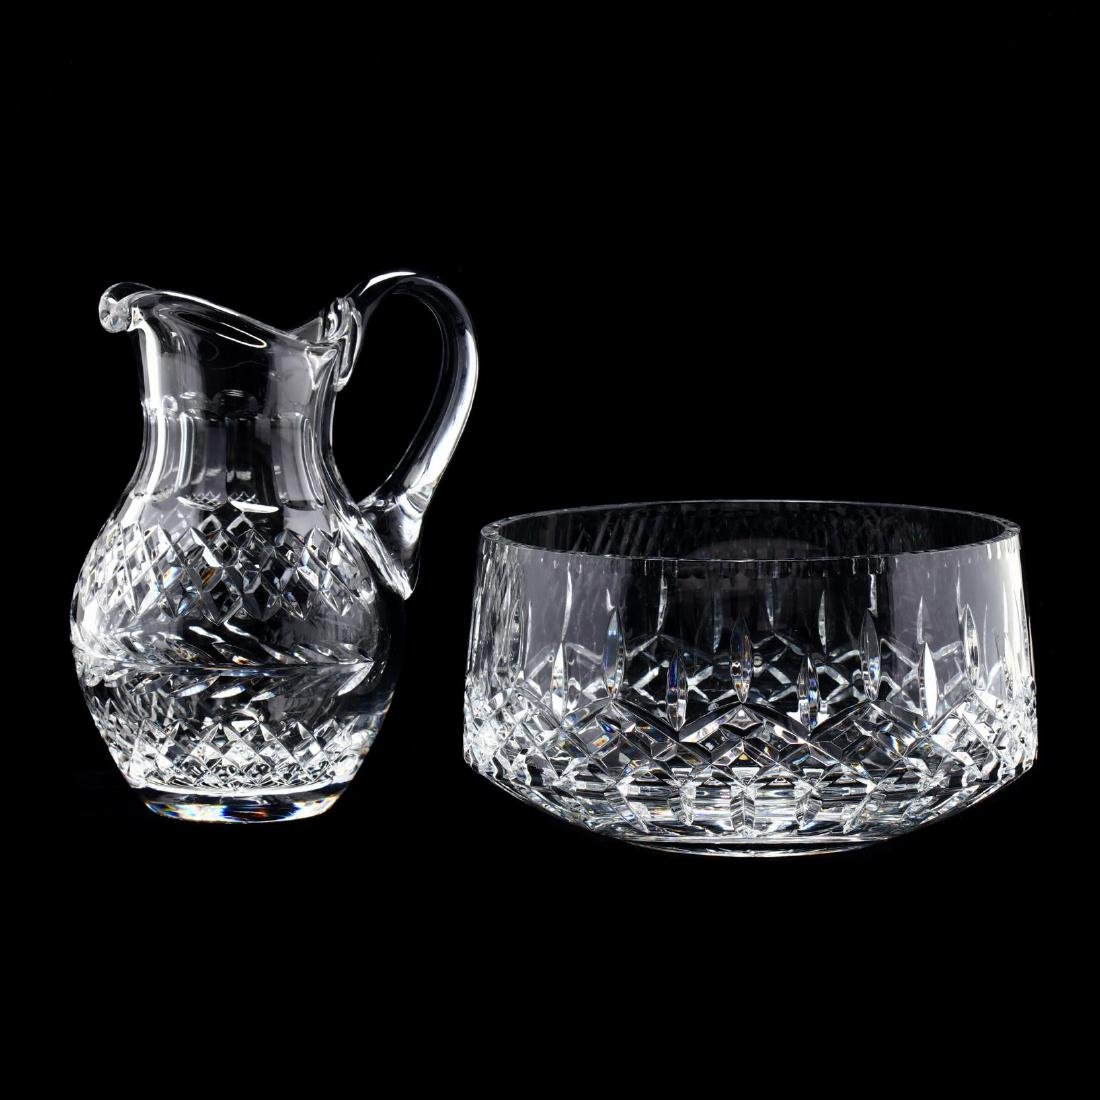 Two Crystal Table Accessories - 2